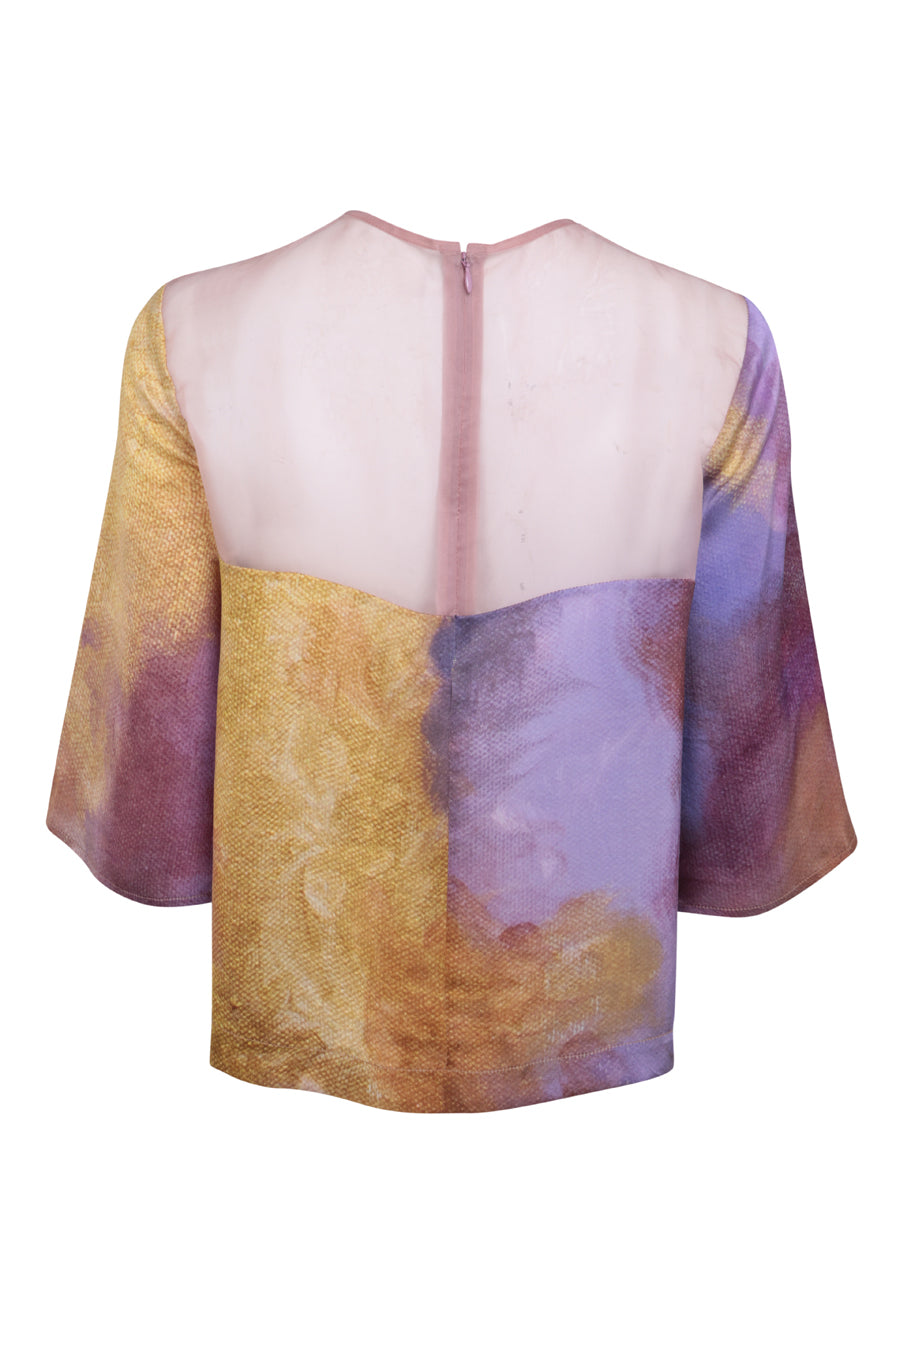 Cielo Blush Blouse